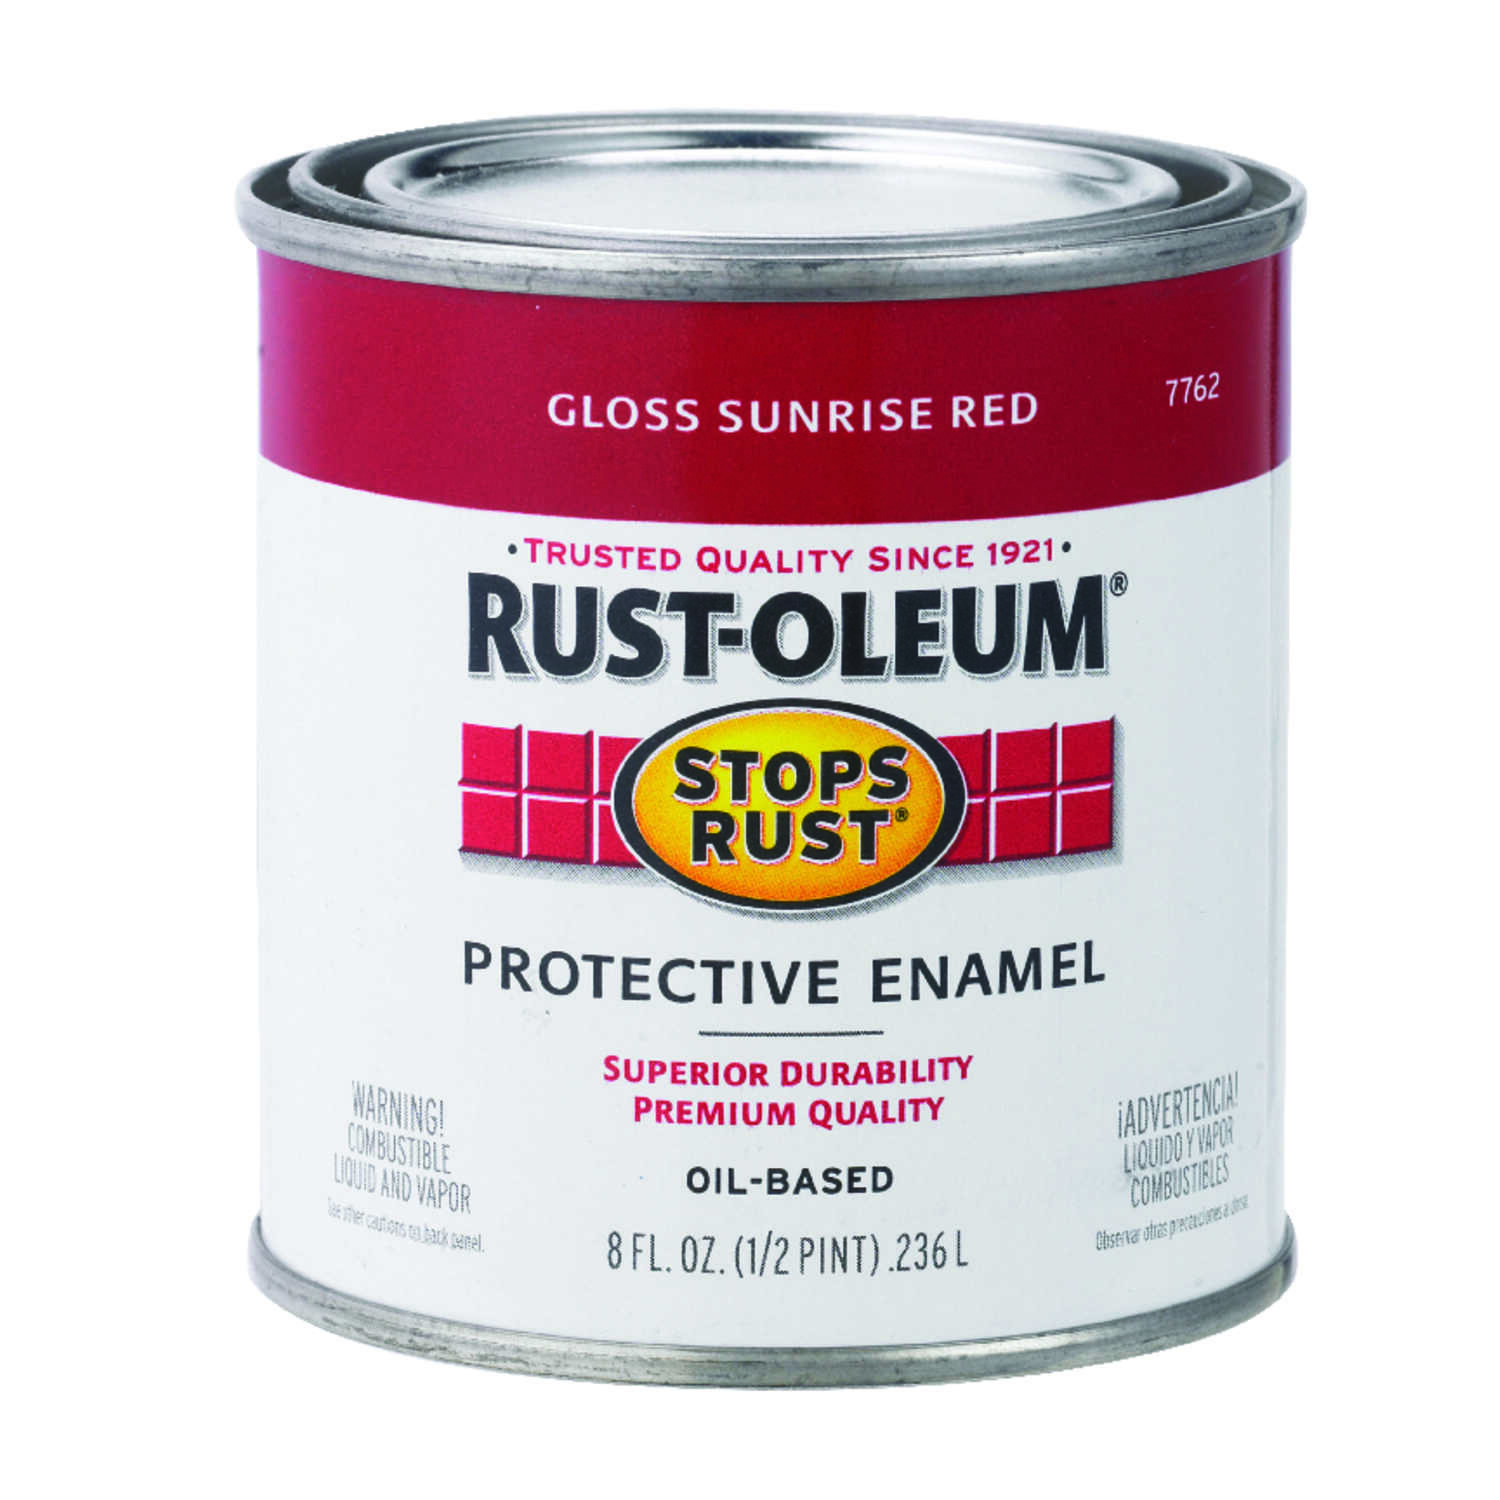 Rust-Oleum  Indoor and Outdoor  Gloss  Sunrise Red  Protective Enamel  0.5 pt.